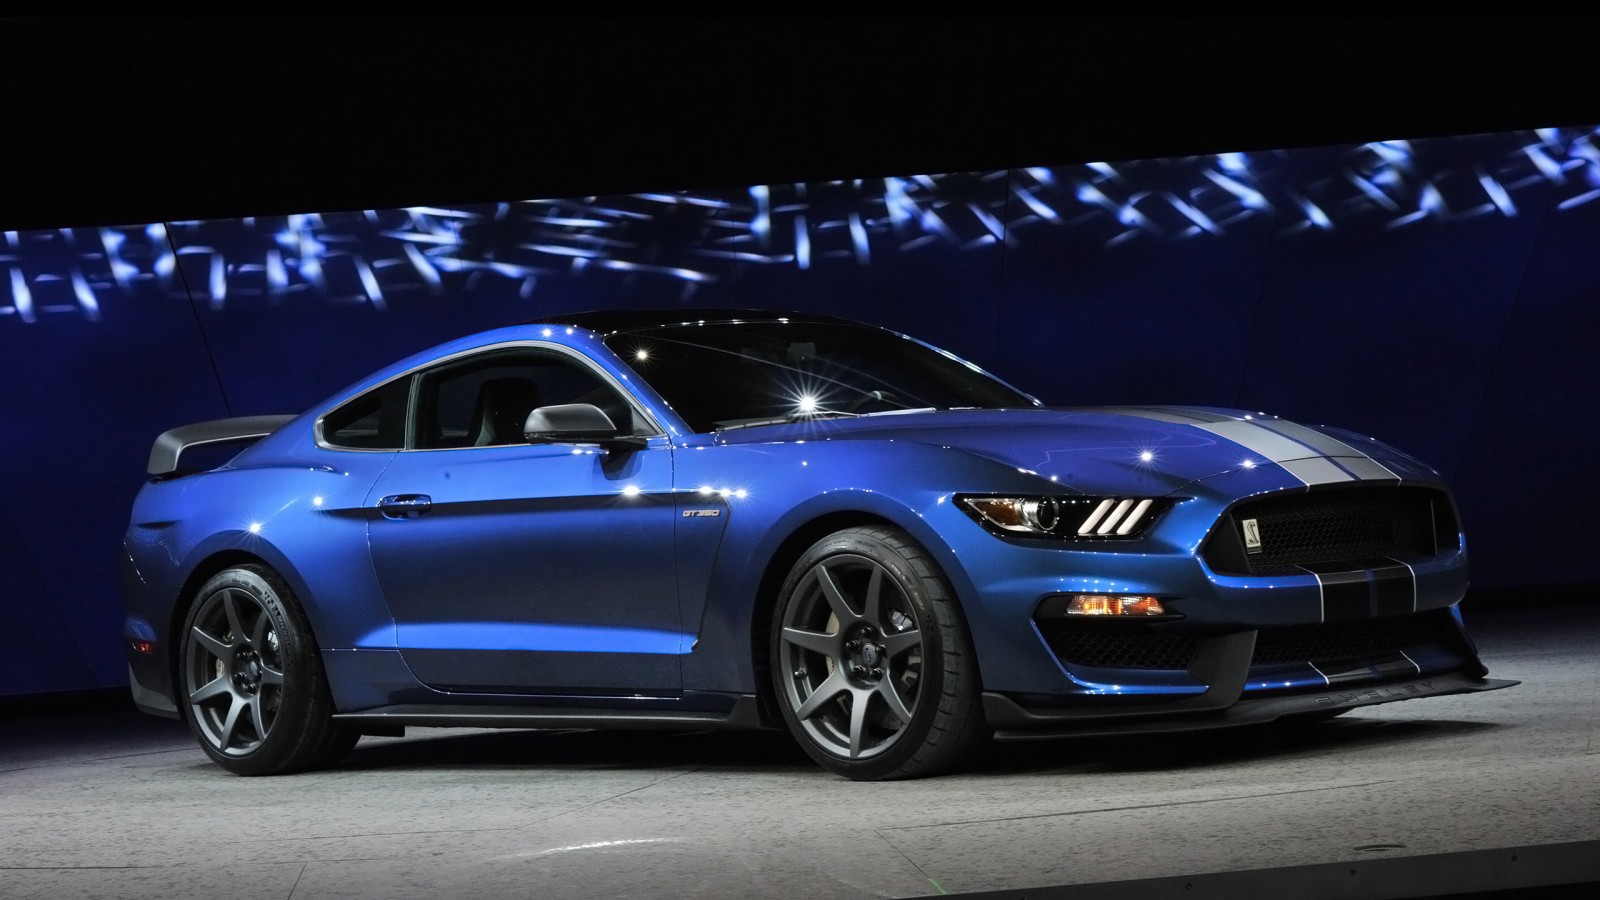 2016 ford shelby gt350r mustang 2 wallpaper hd car wallpapers. Black Bedroom Furniture Sets. Home Design Ideas